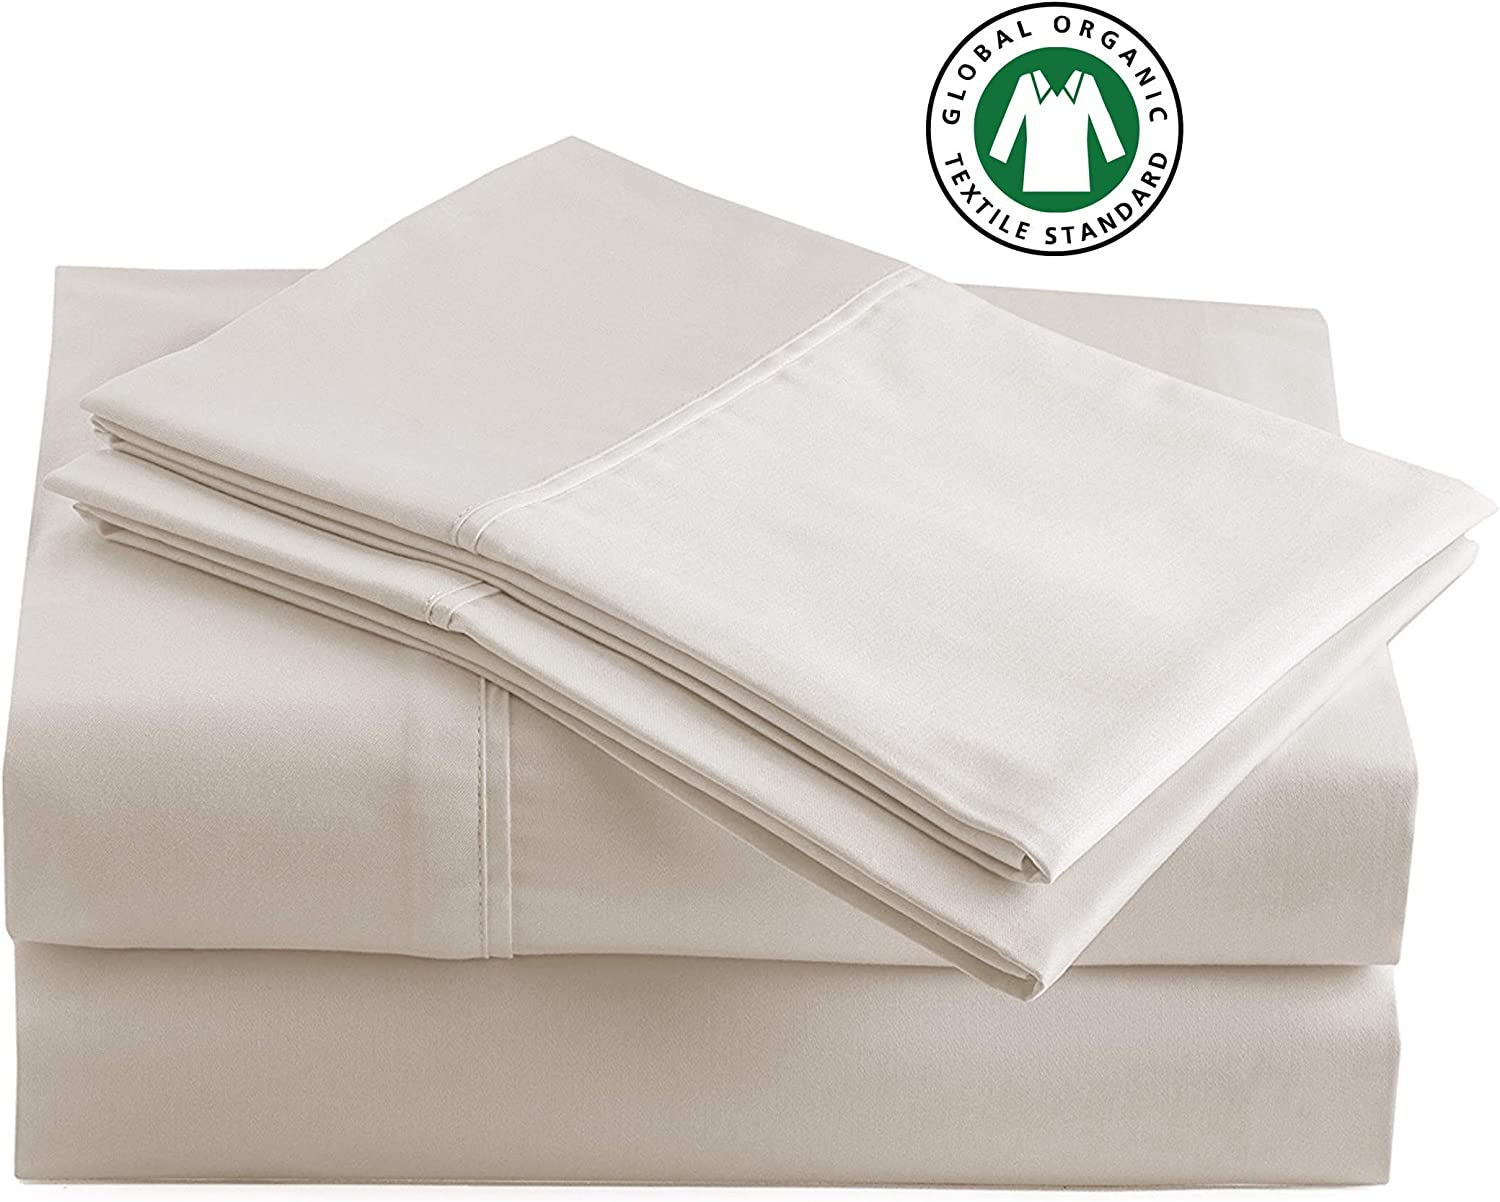 """100% Organic Cotton Moonstruck Queen-Sheets Set, 4-Piece Pure Organic Cotton Long Staple Percale Weave Ultra Soft Best Bedding Sheets for Bed, Breathable, GOTS Certified, Fits Mattress Upto 17"""" Deep"""